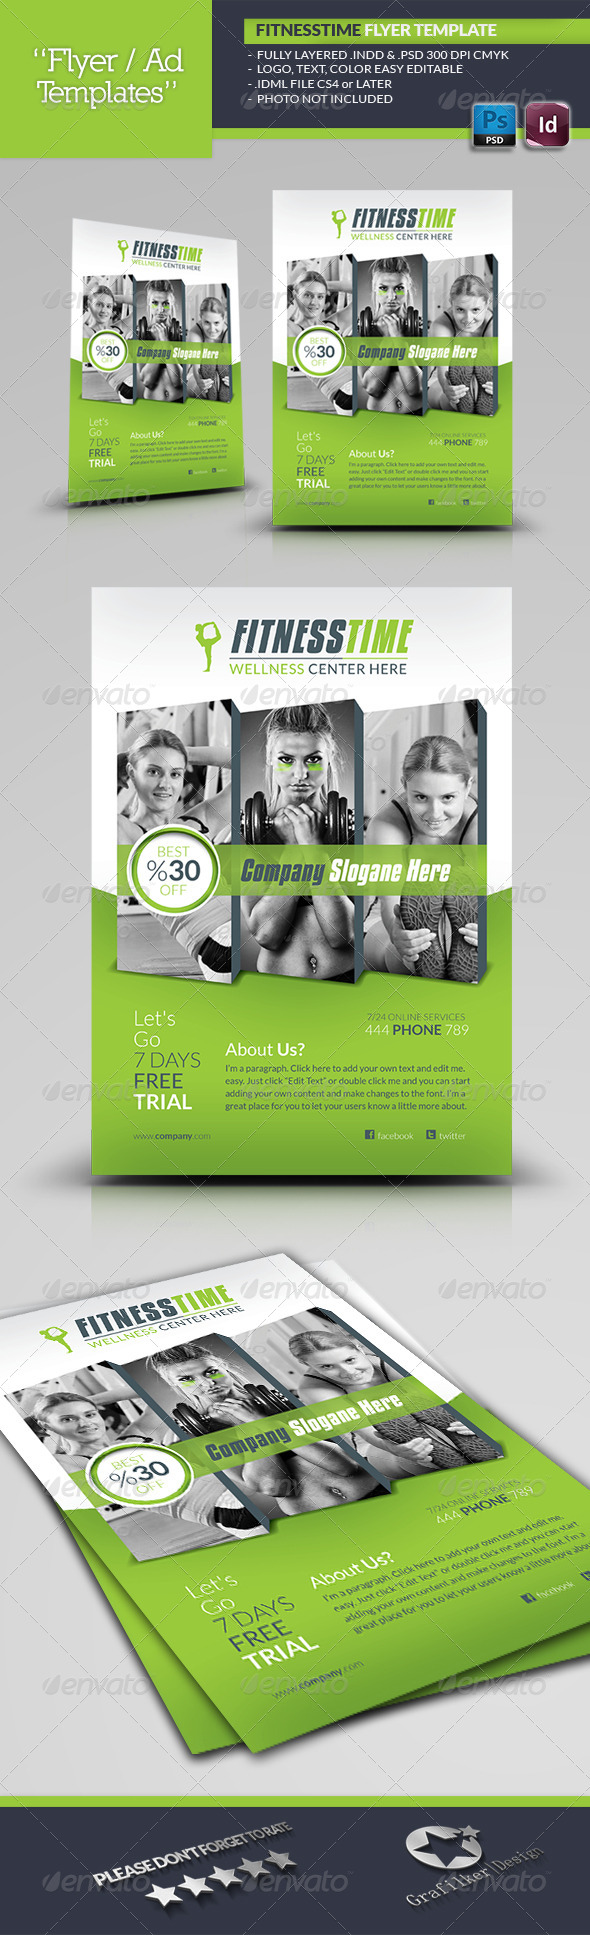 GraphicRiver Fitness Time Flyer Template 5692249